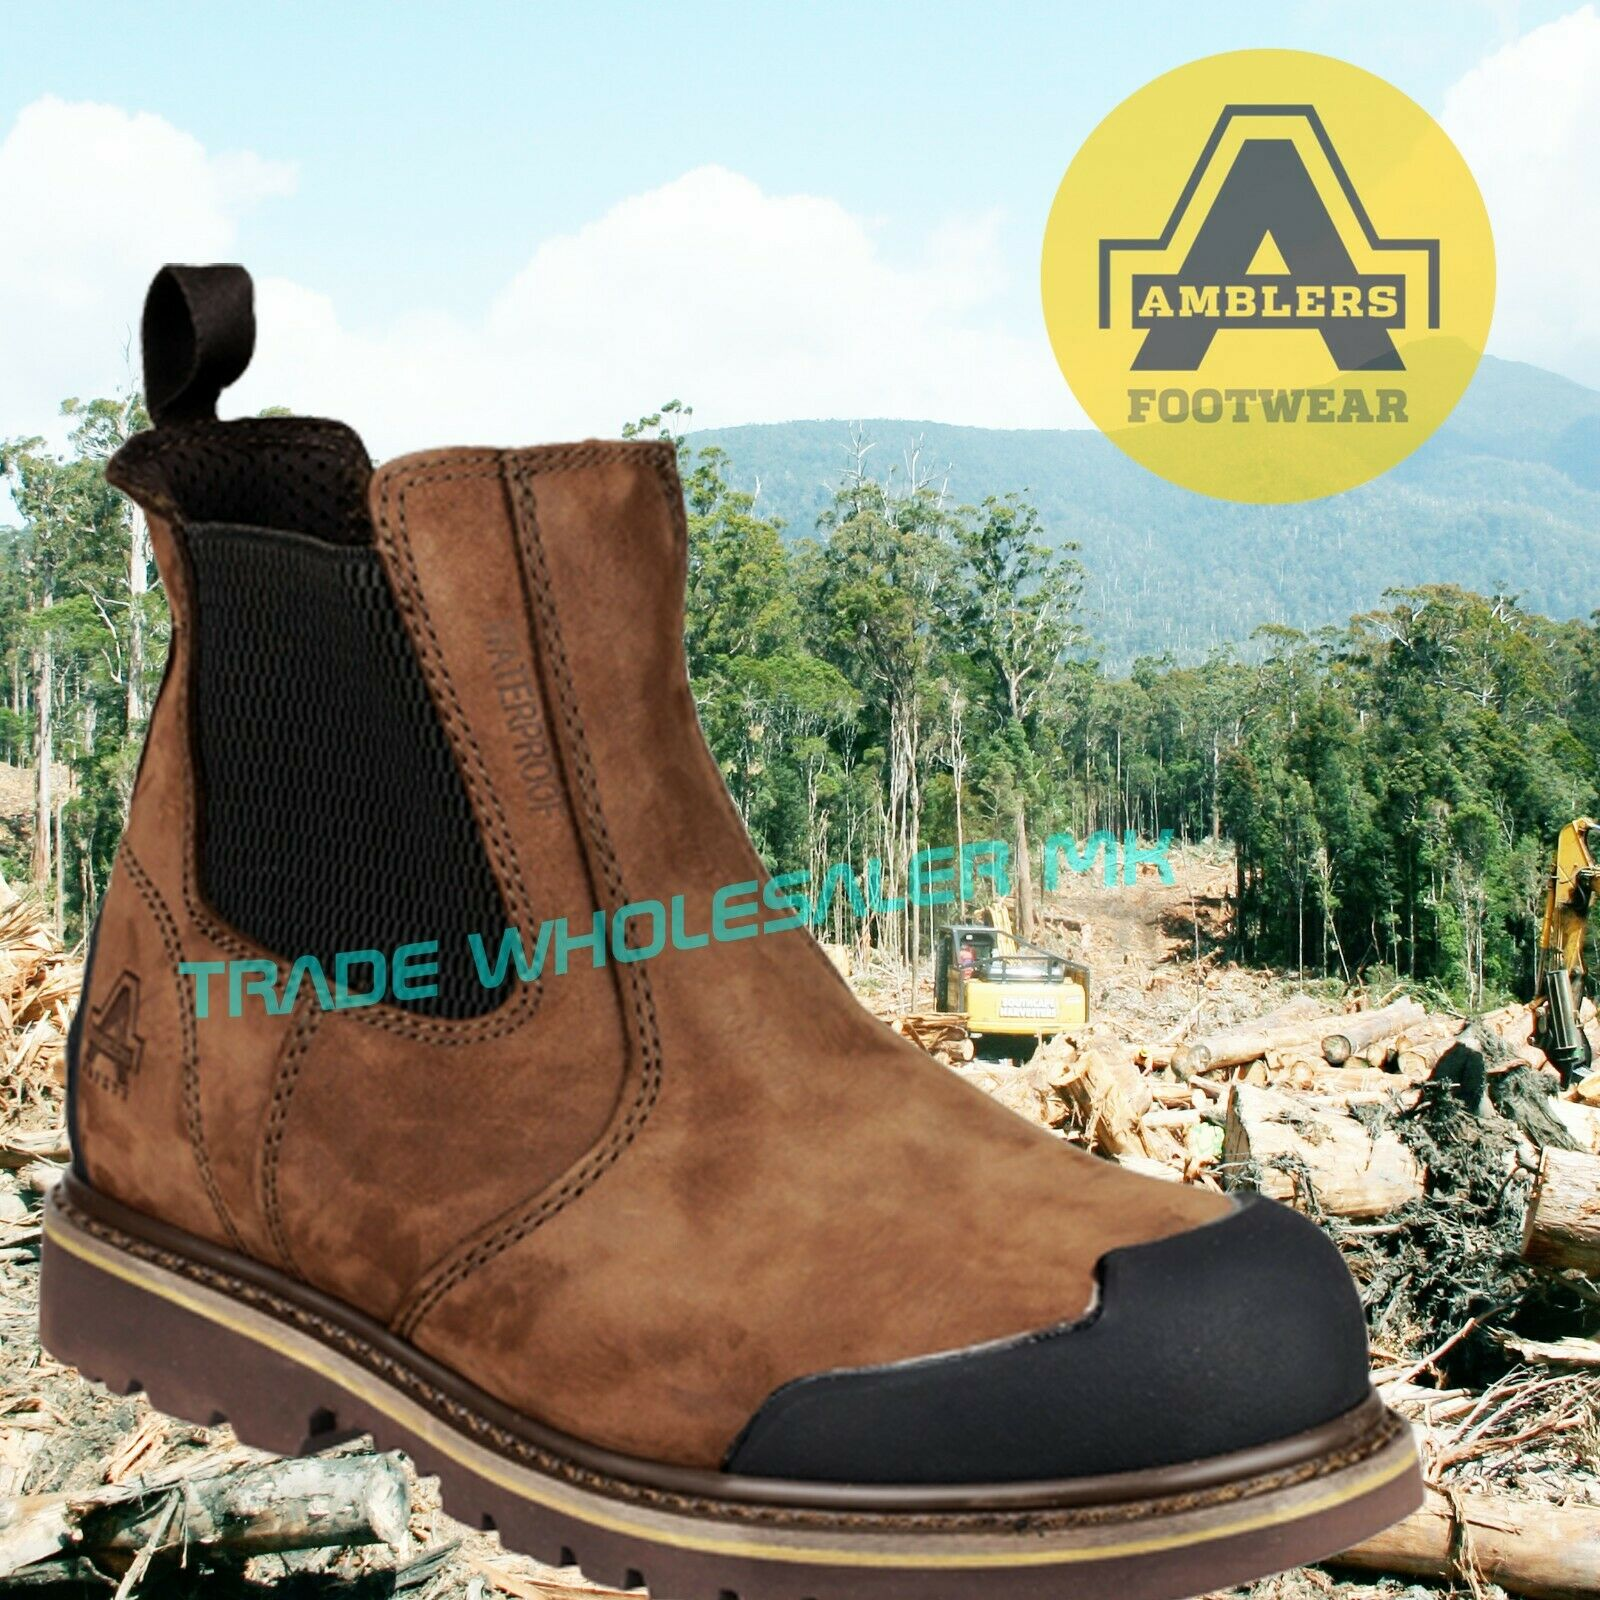 AMBLERS FS225 S3 brown safety dealer boot with midsole /& bump cap size 6-13